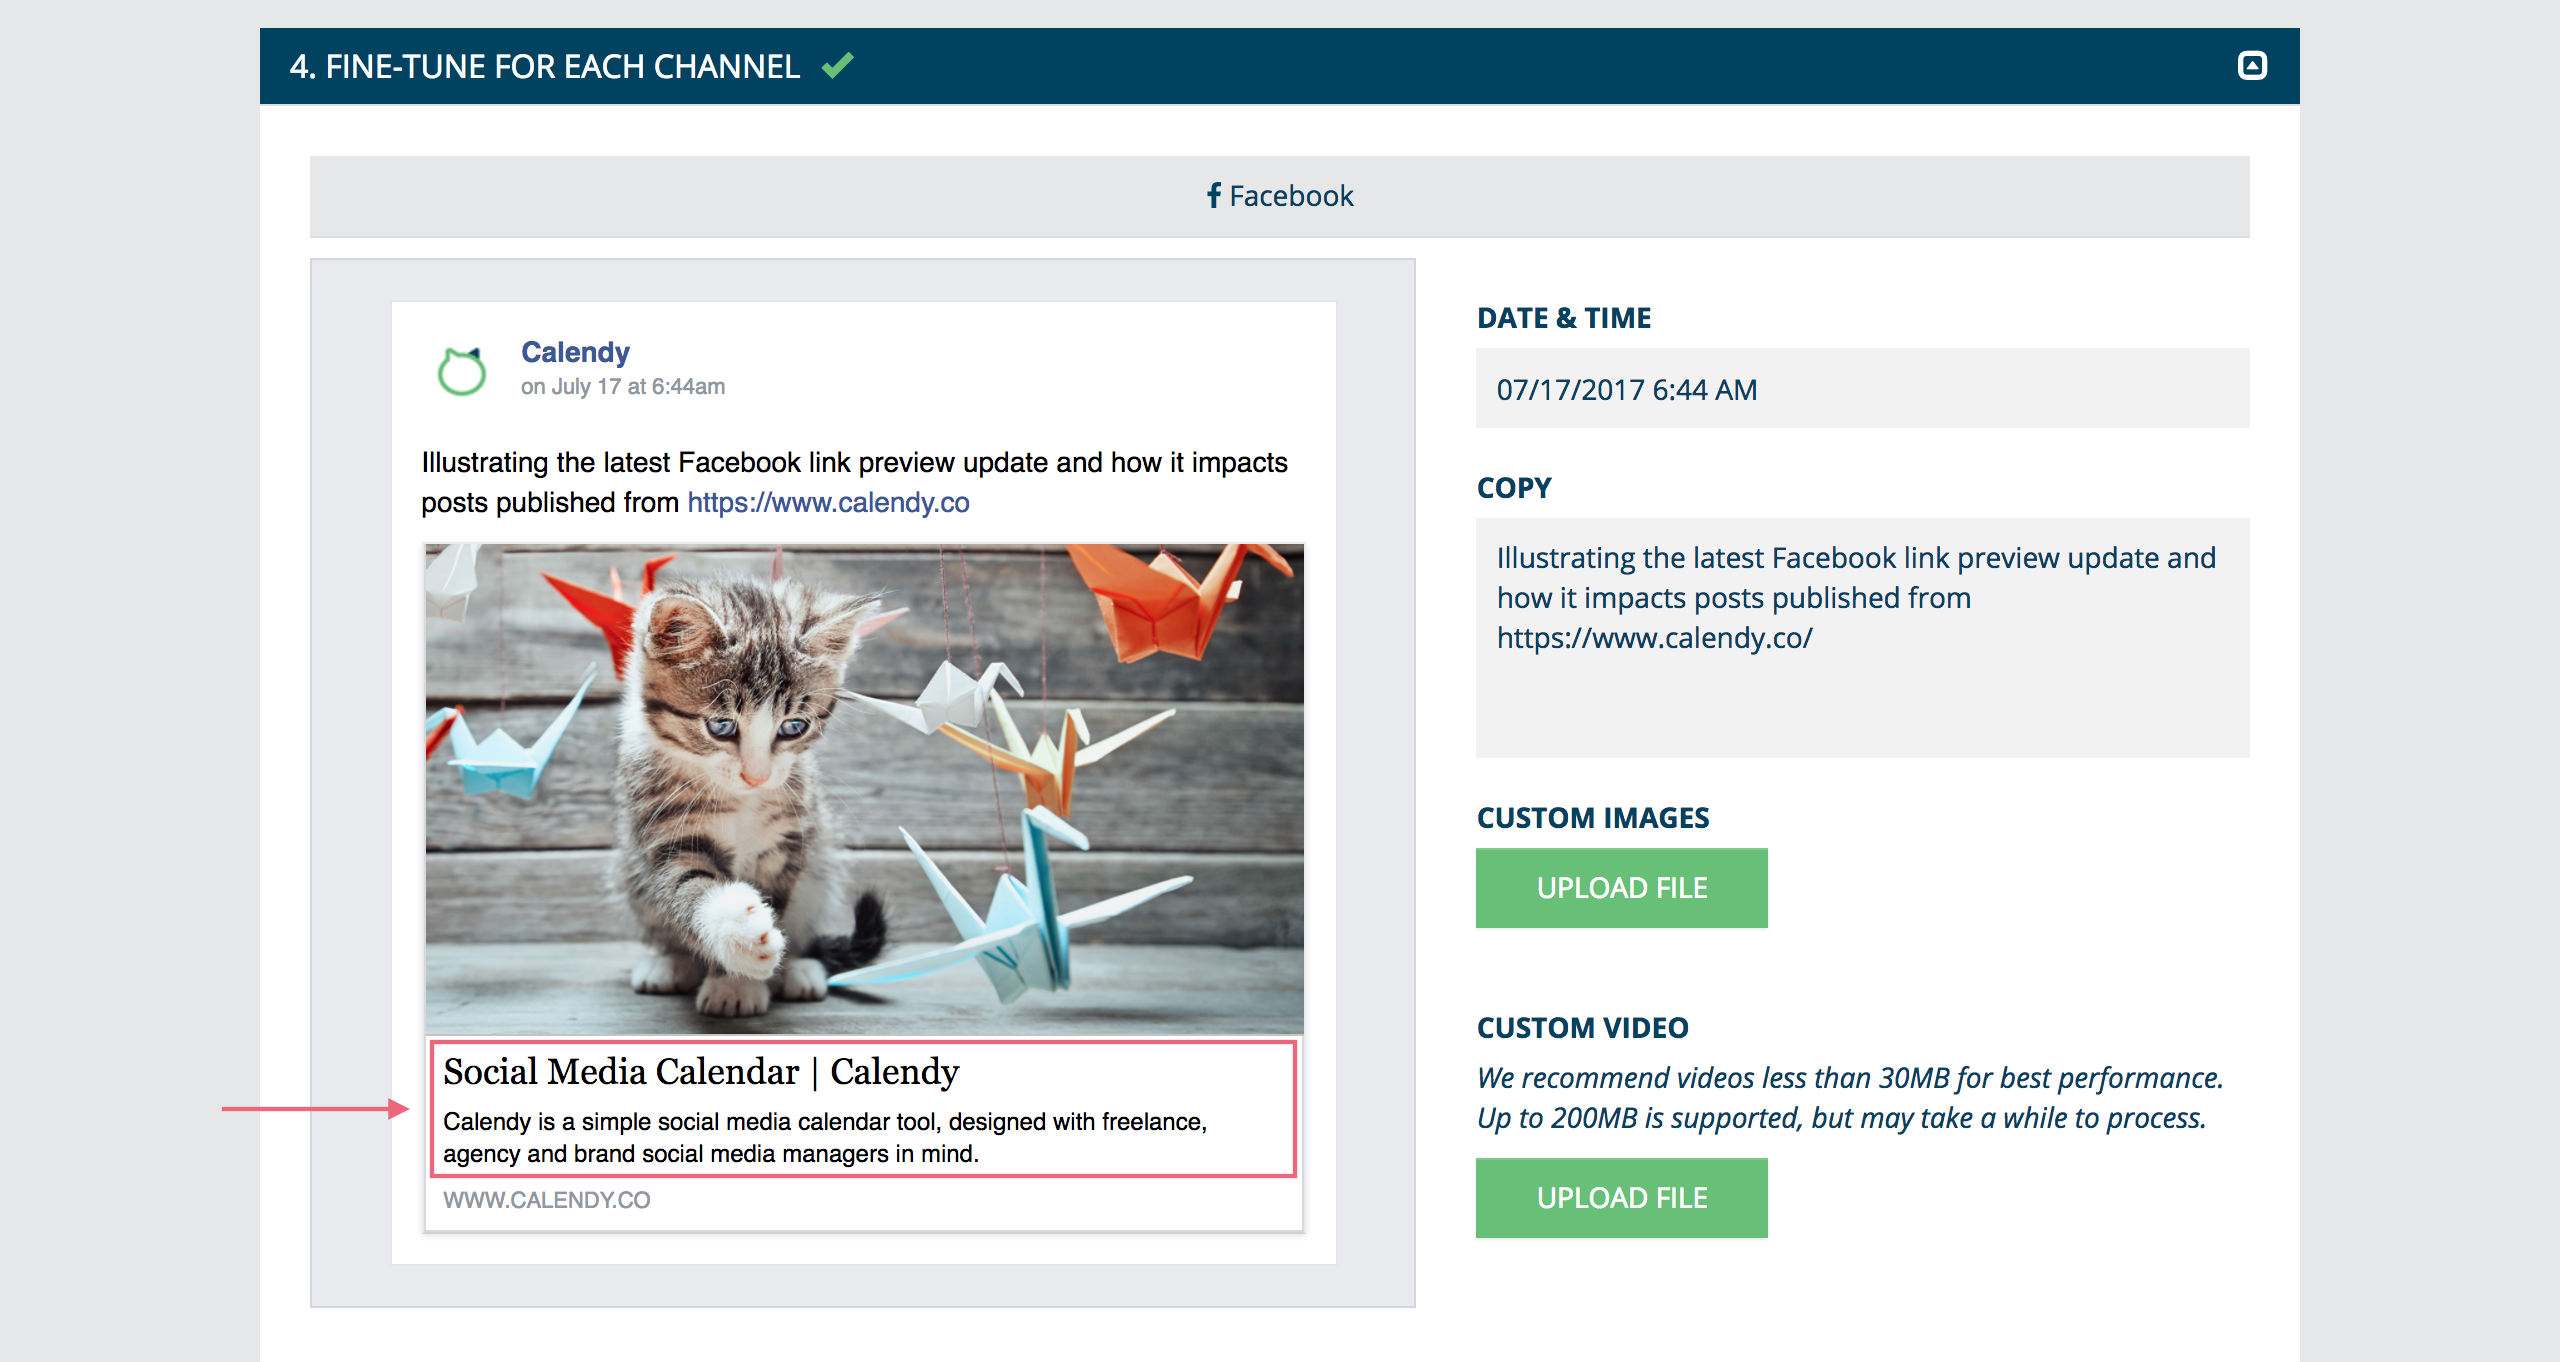 Facebook link preview update example 2